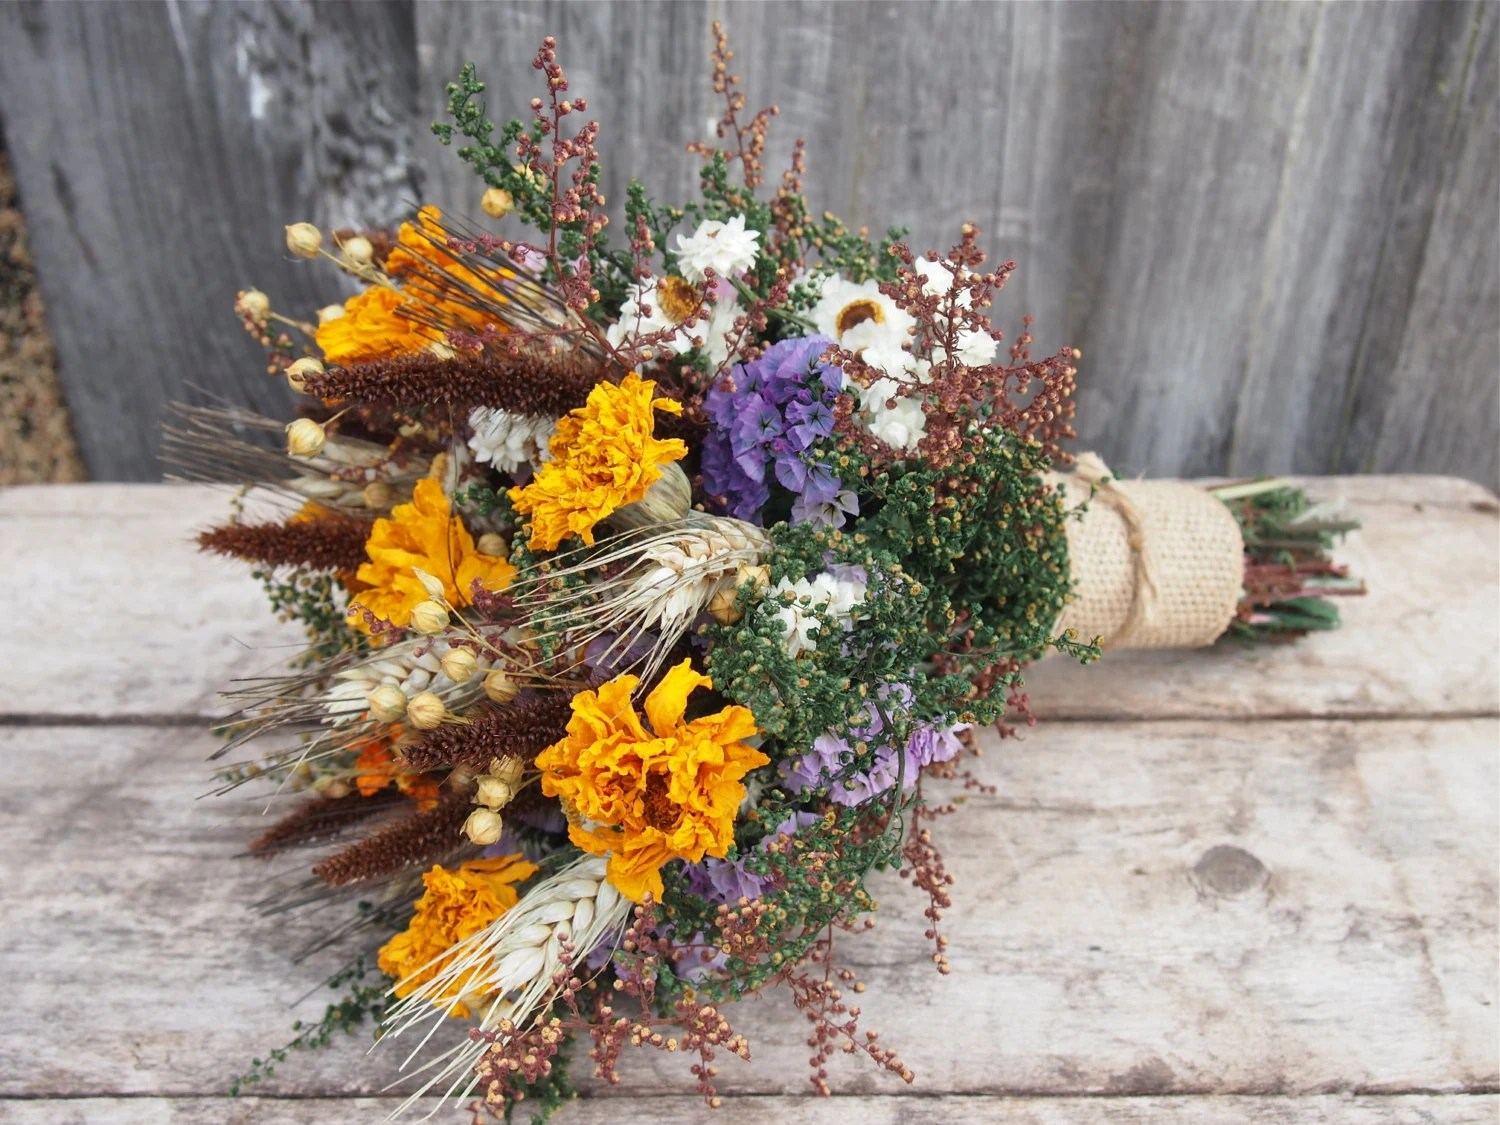 Autumn HARVEST Bridesmaid Dried Flower Bouquet For A Rustic